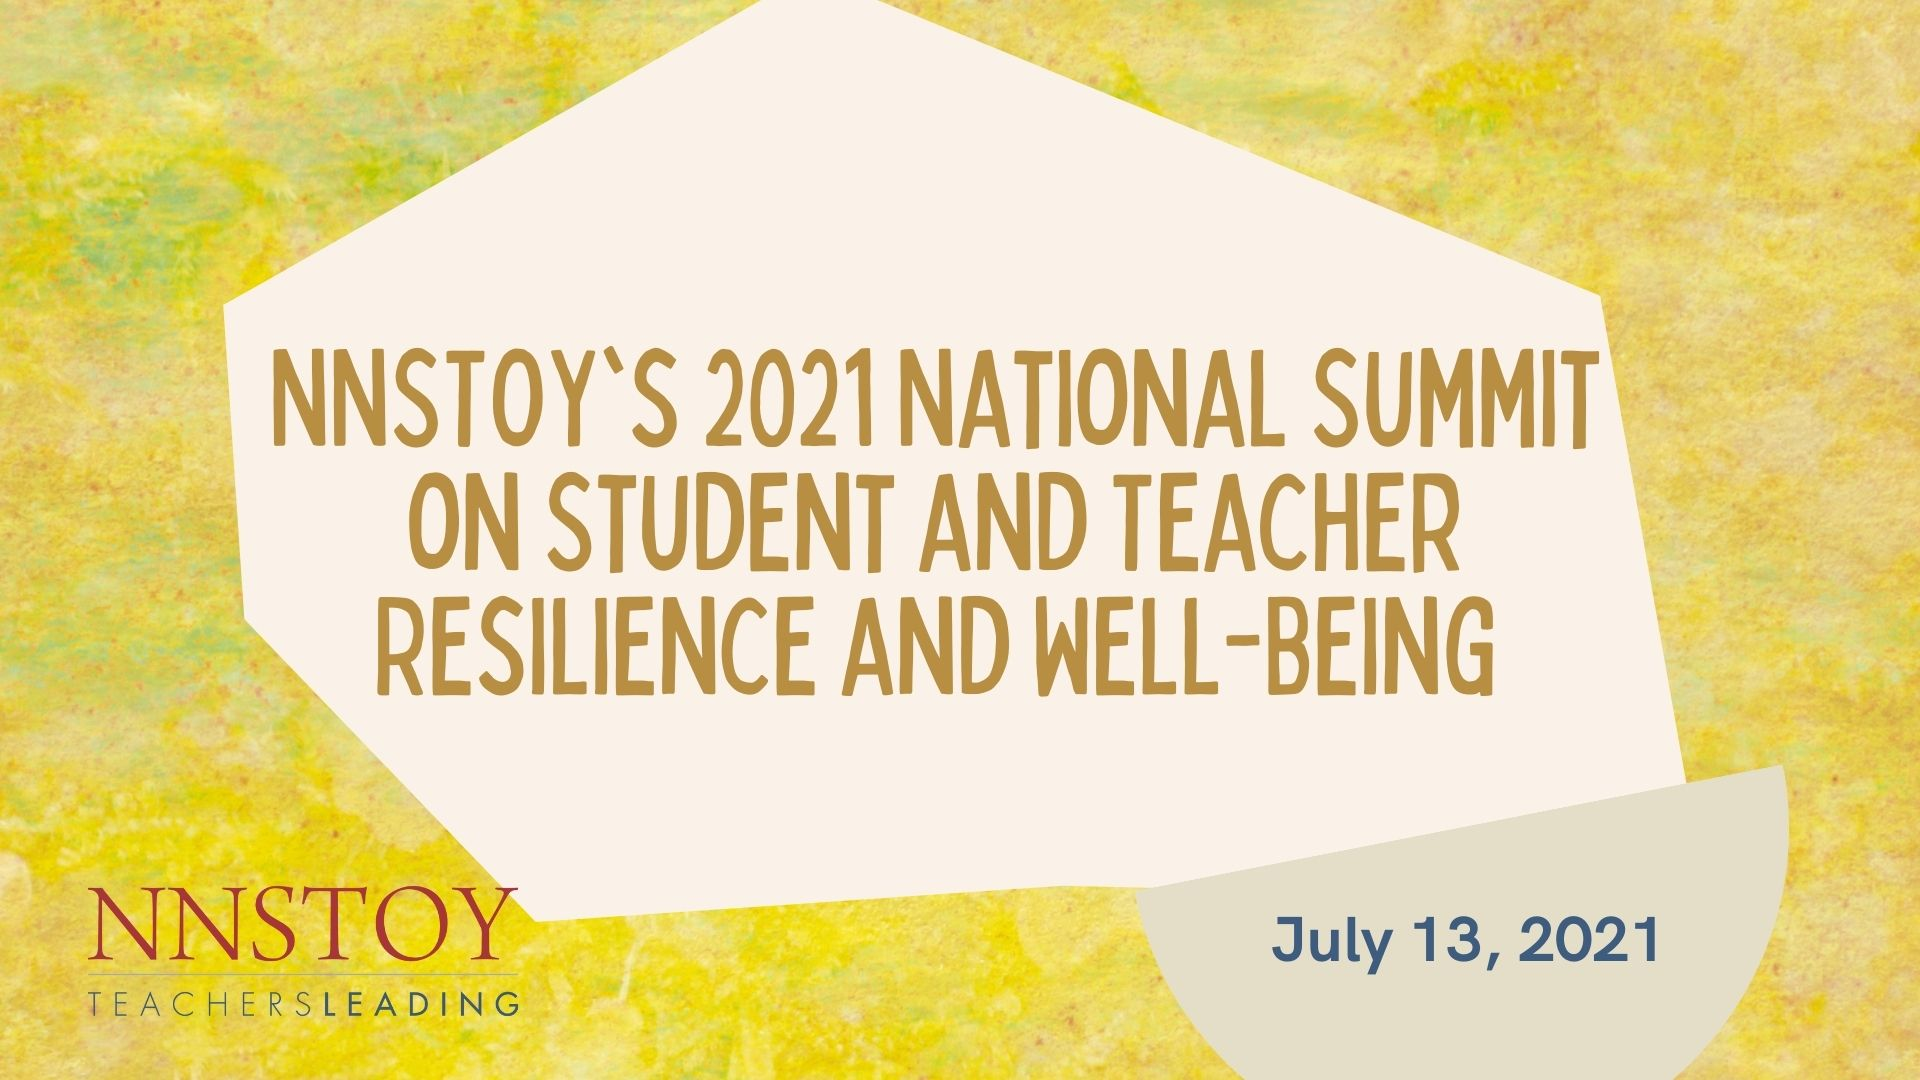 Watch: 2021 National Summit on Student and Teacher Resilience and Well-Being